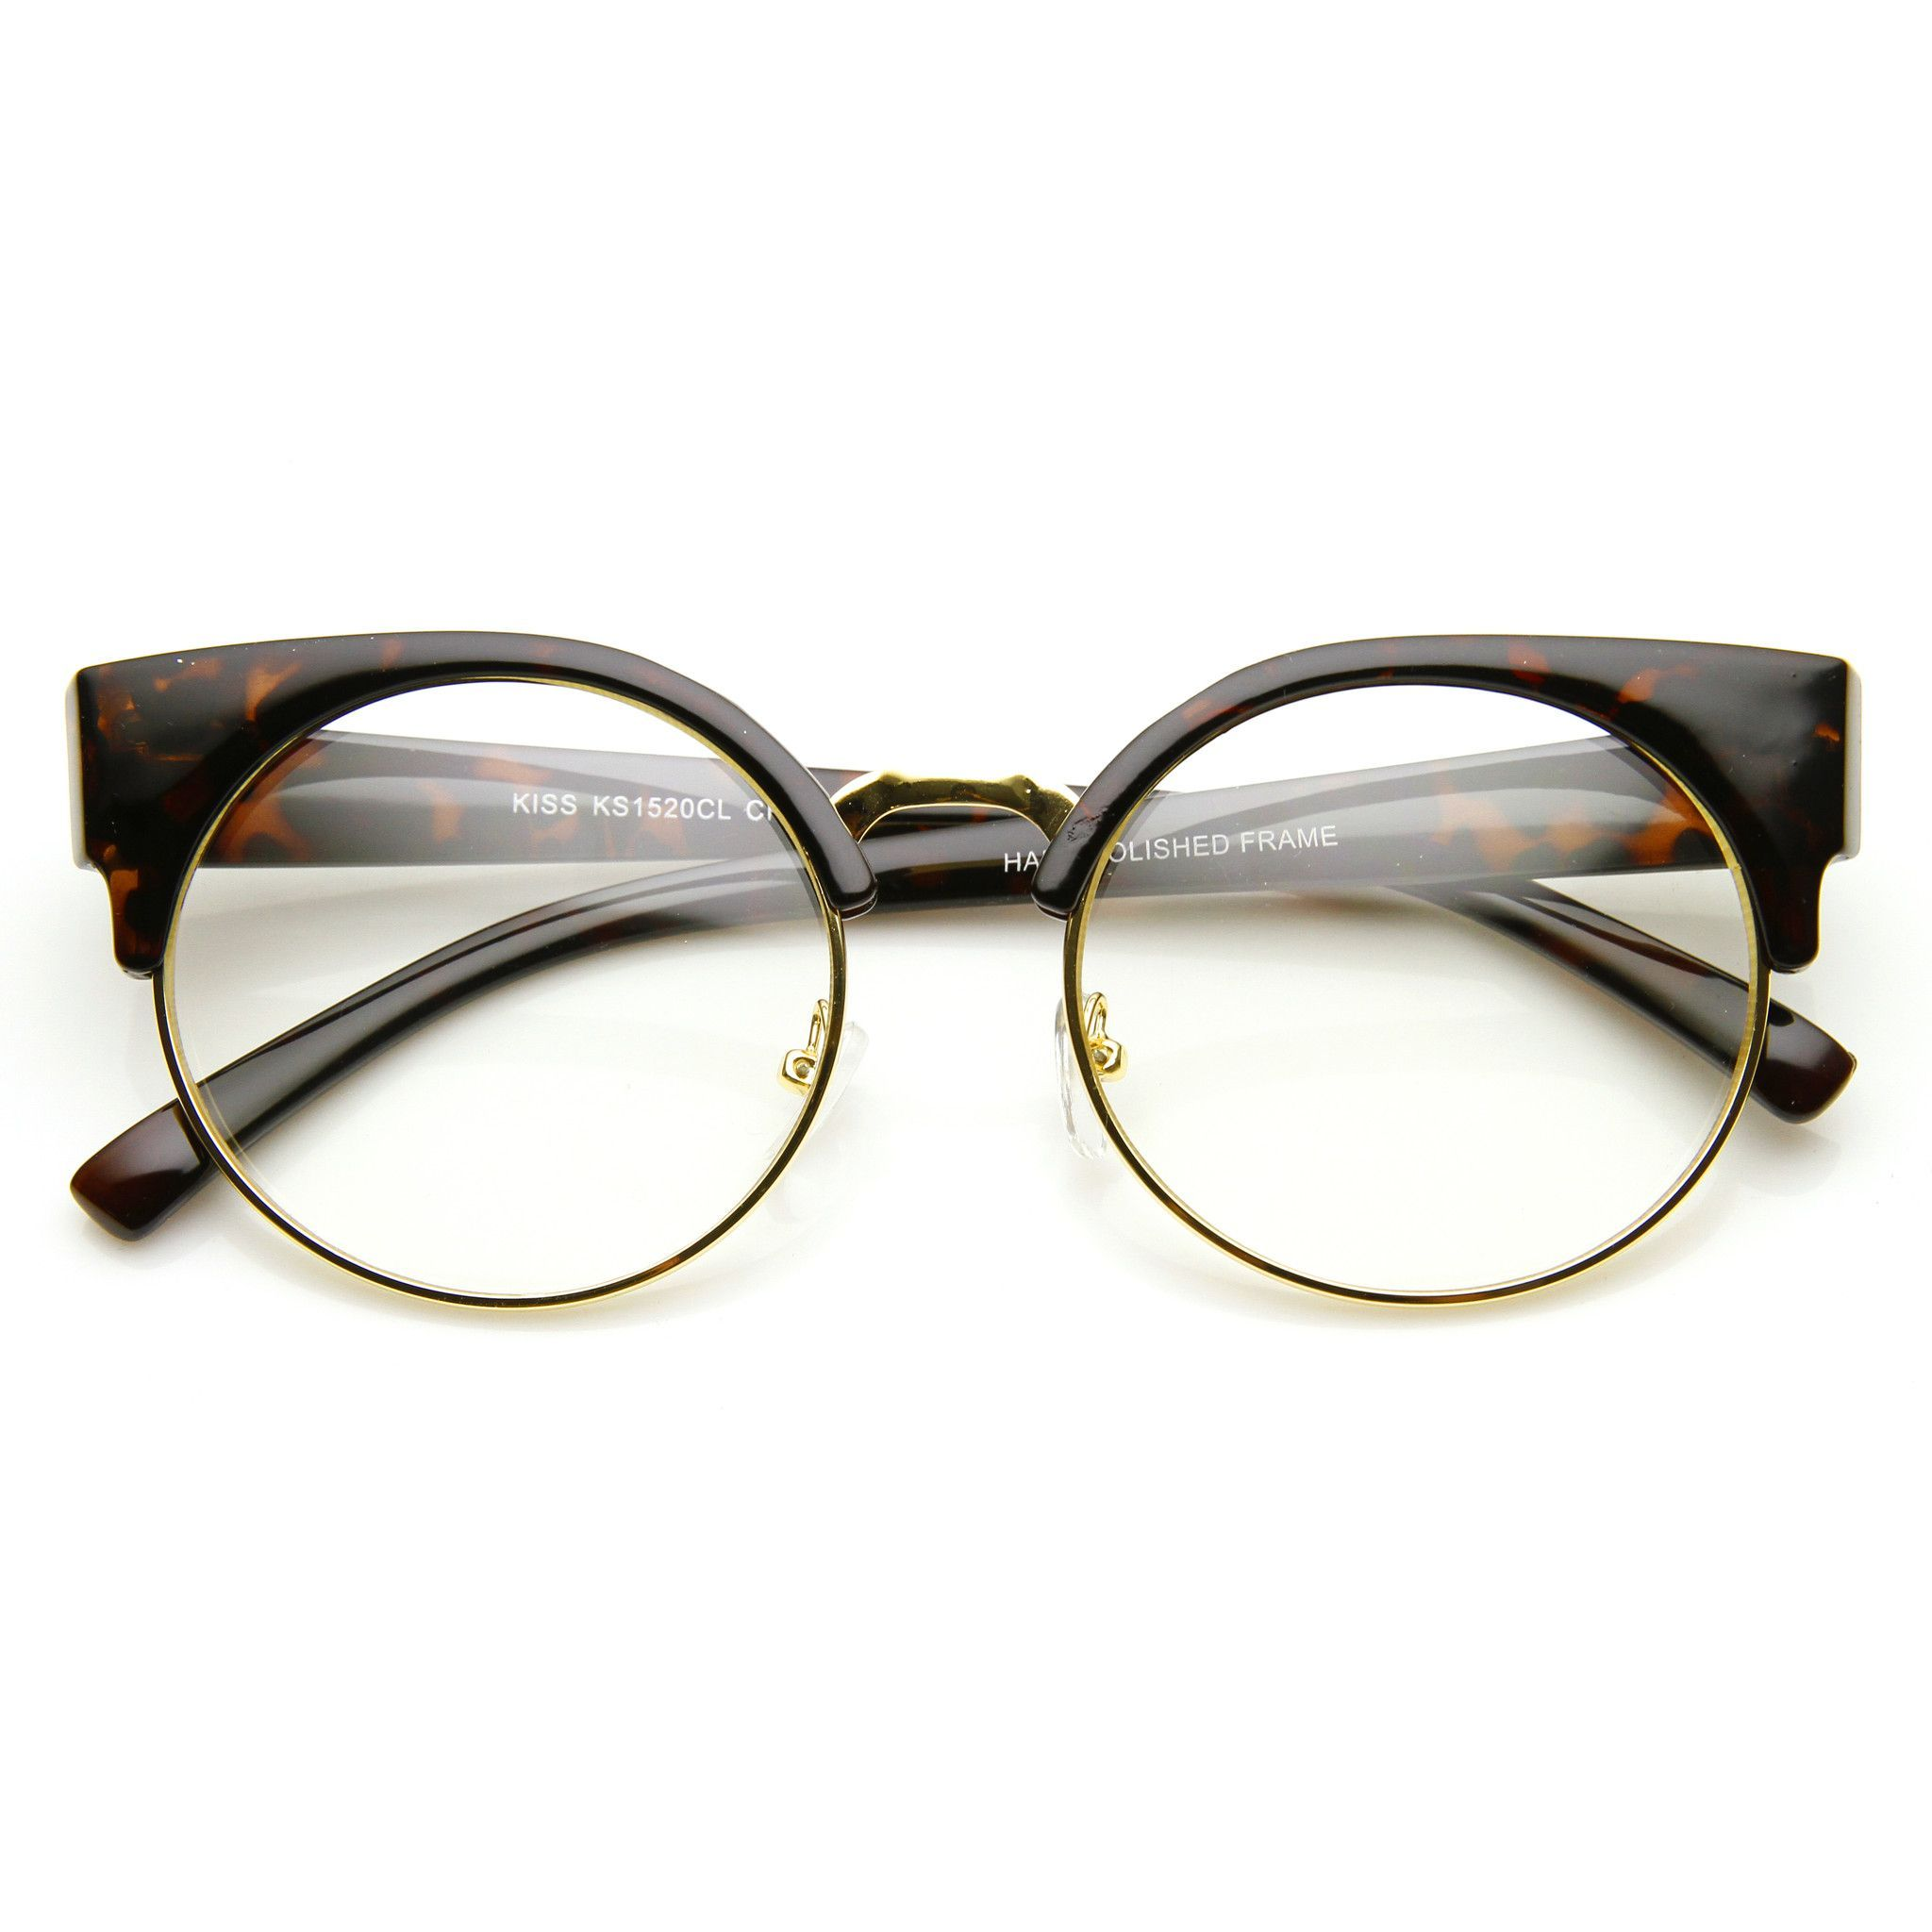 c658617c079 Indie Hipster Round Cat Eye Clear Lens Half Frame Glasses 9351 ...